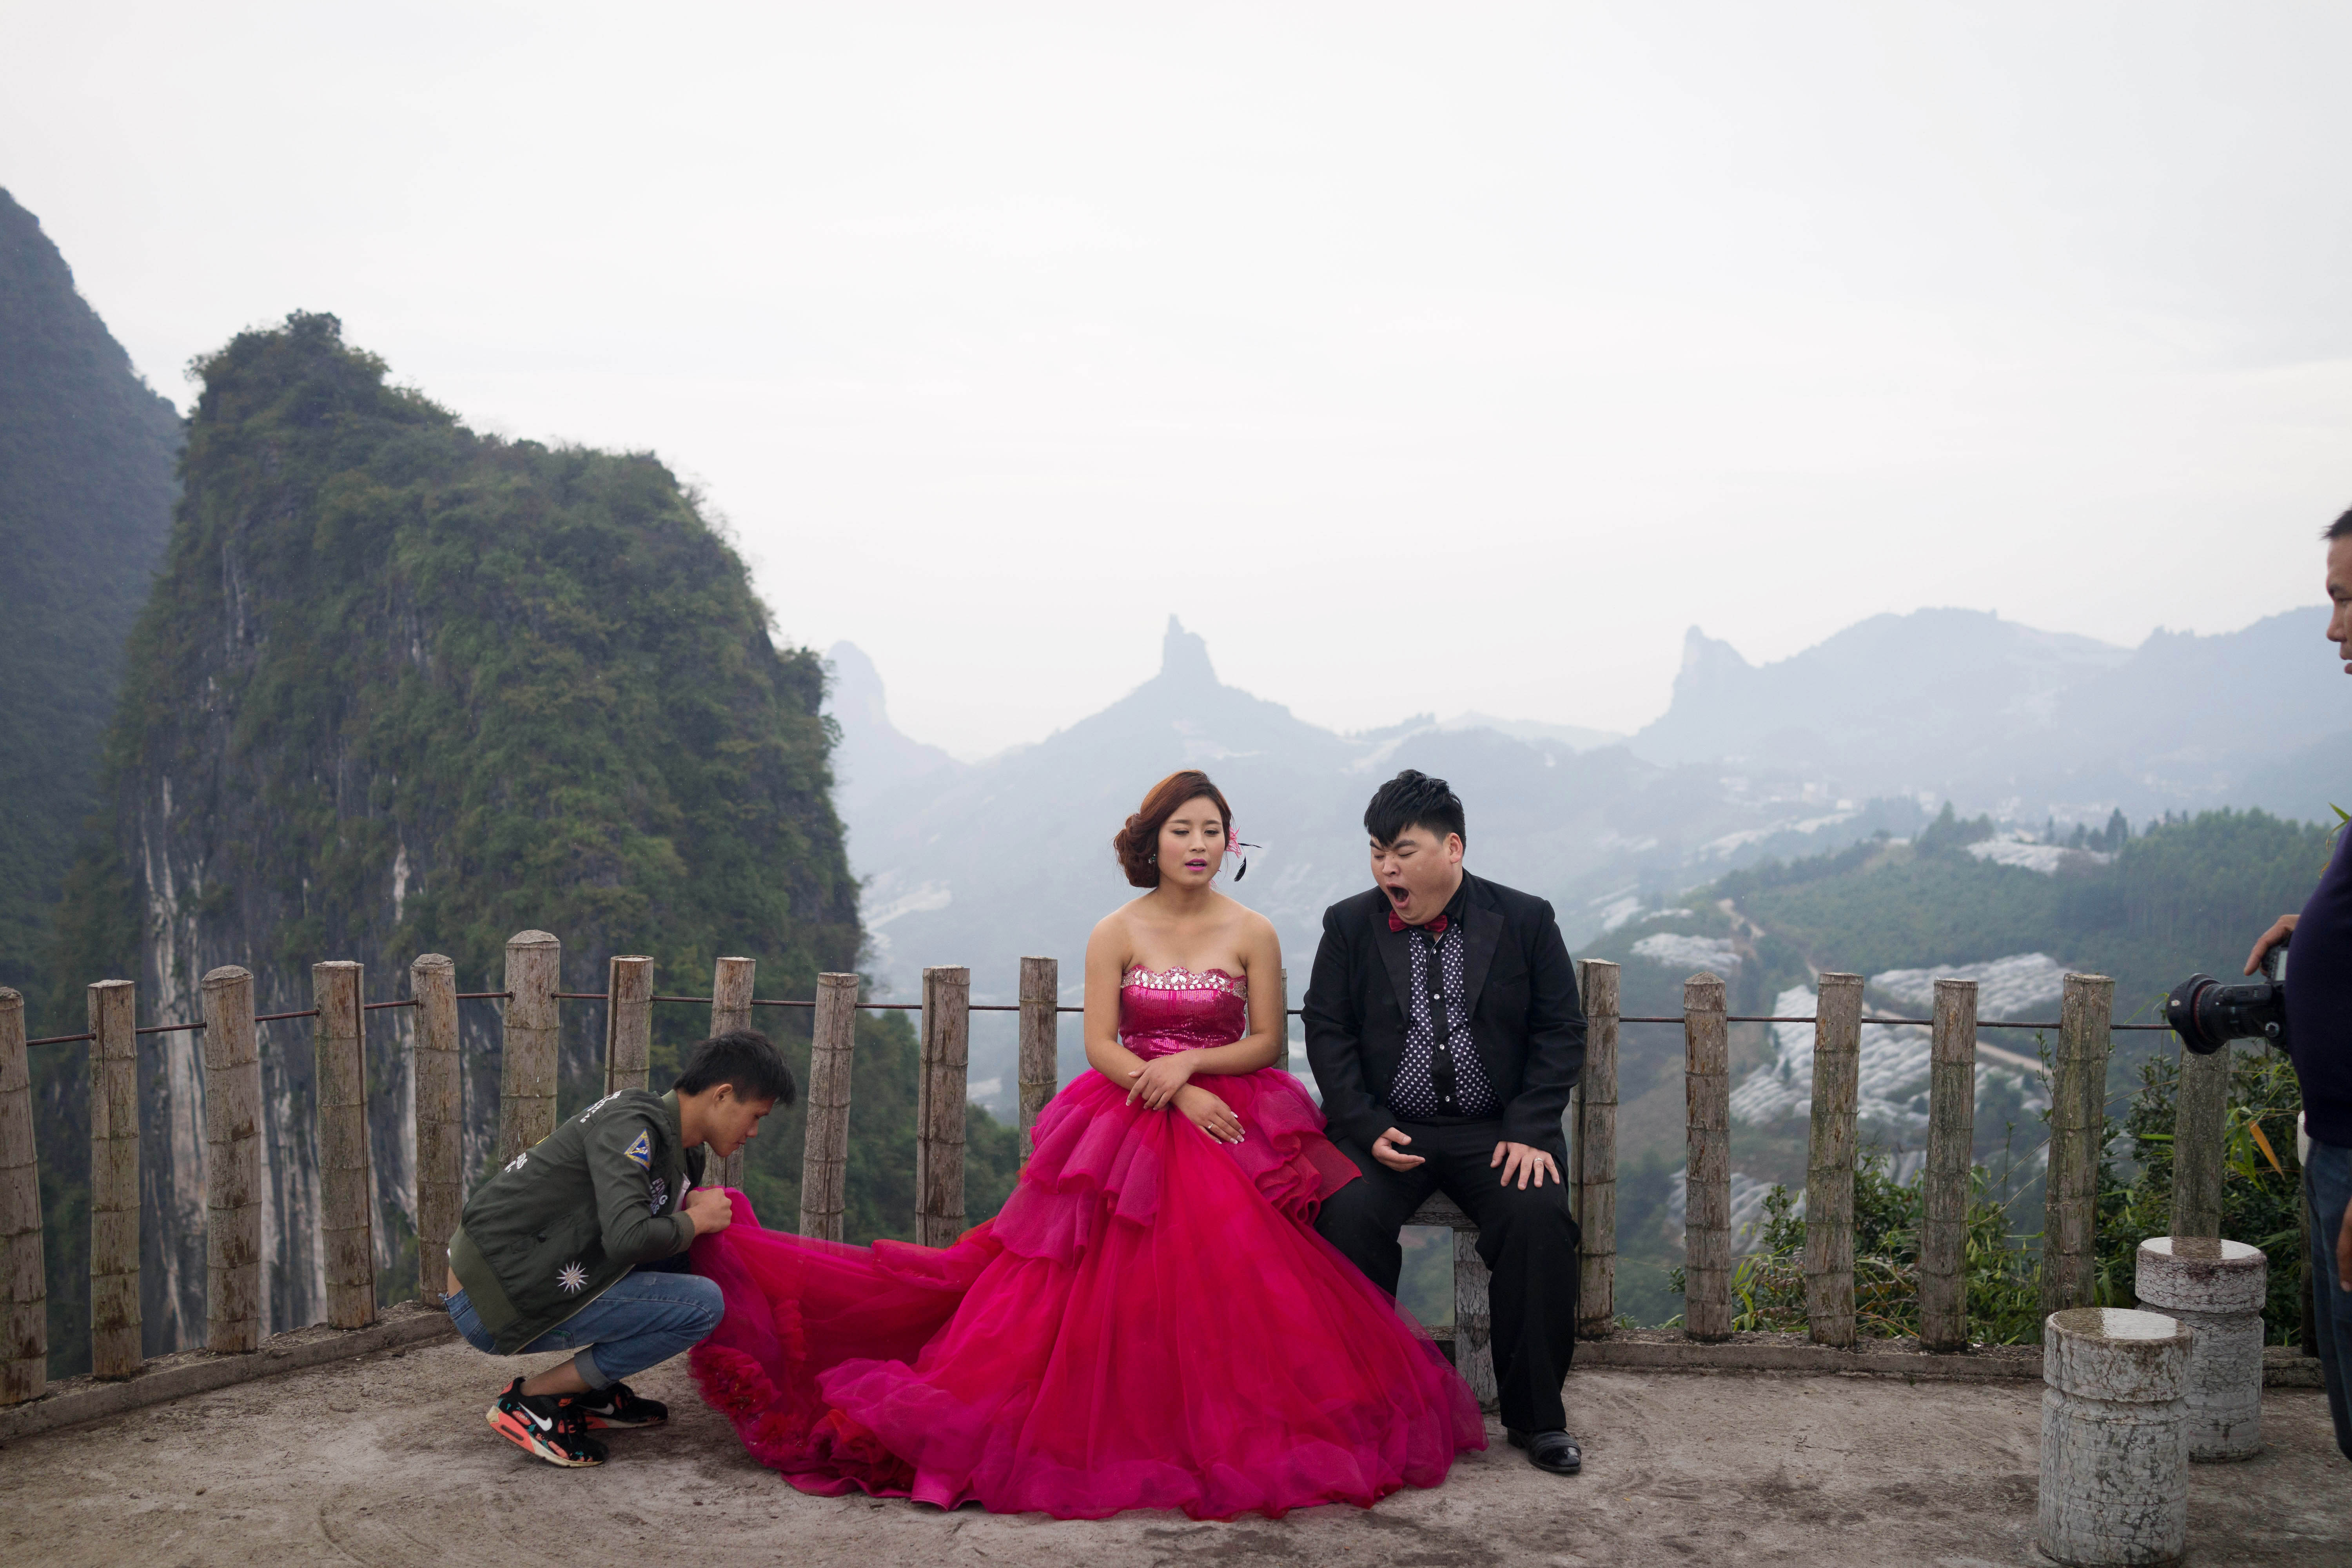 A couple poses for photos in Guilin, southern China known for its dramatic landscape, in November 2015.